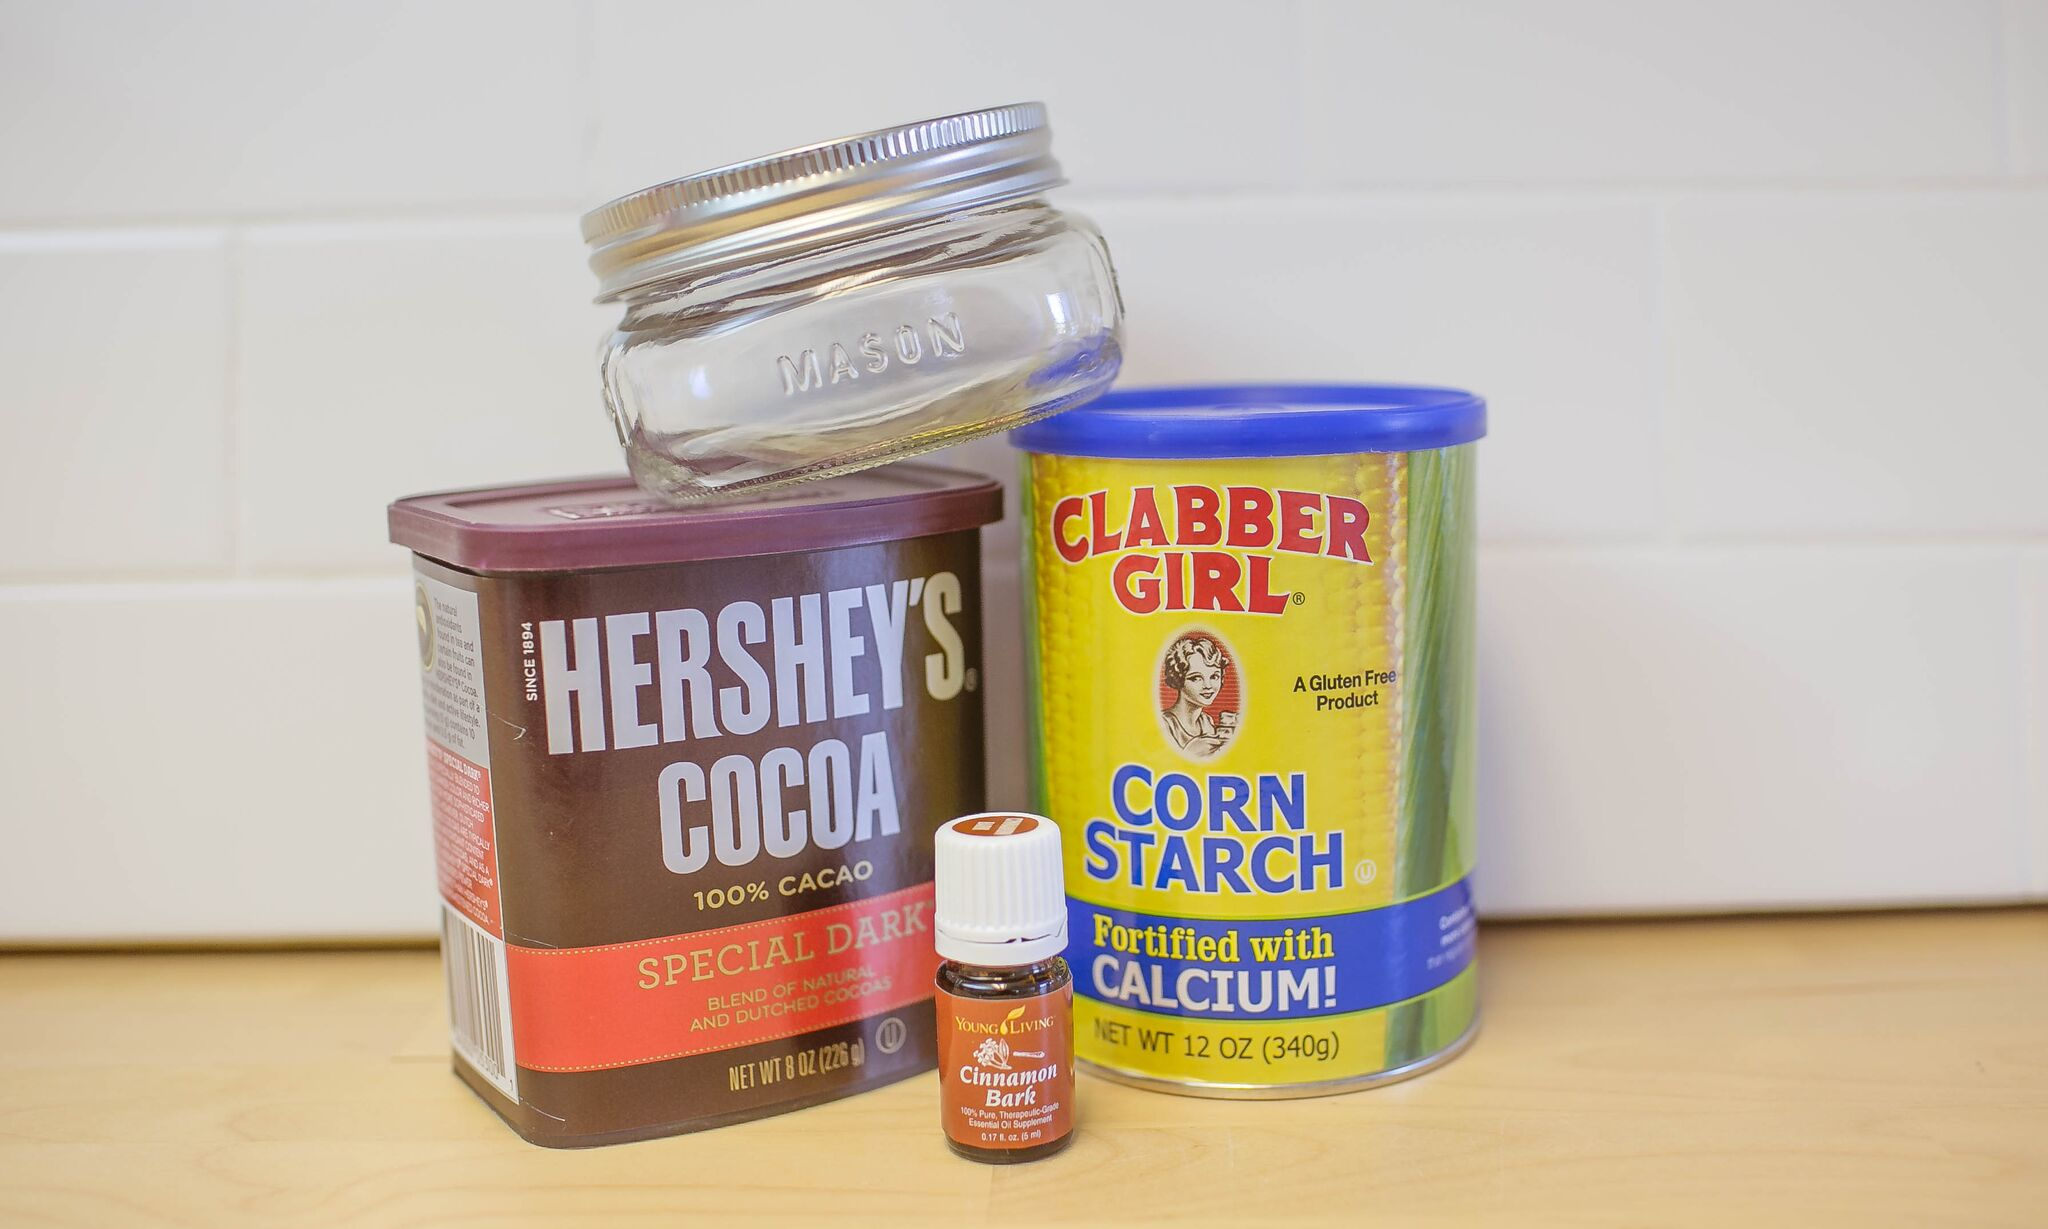 Assemble your materials to make DIY dry shampoo: Cocoa powder, essential oil, corn starch and a mason jar.